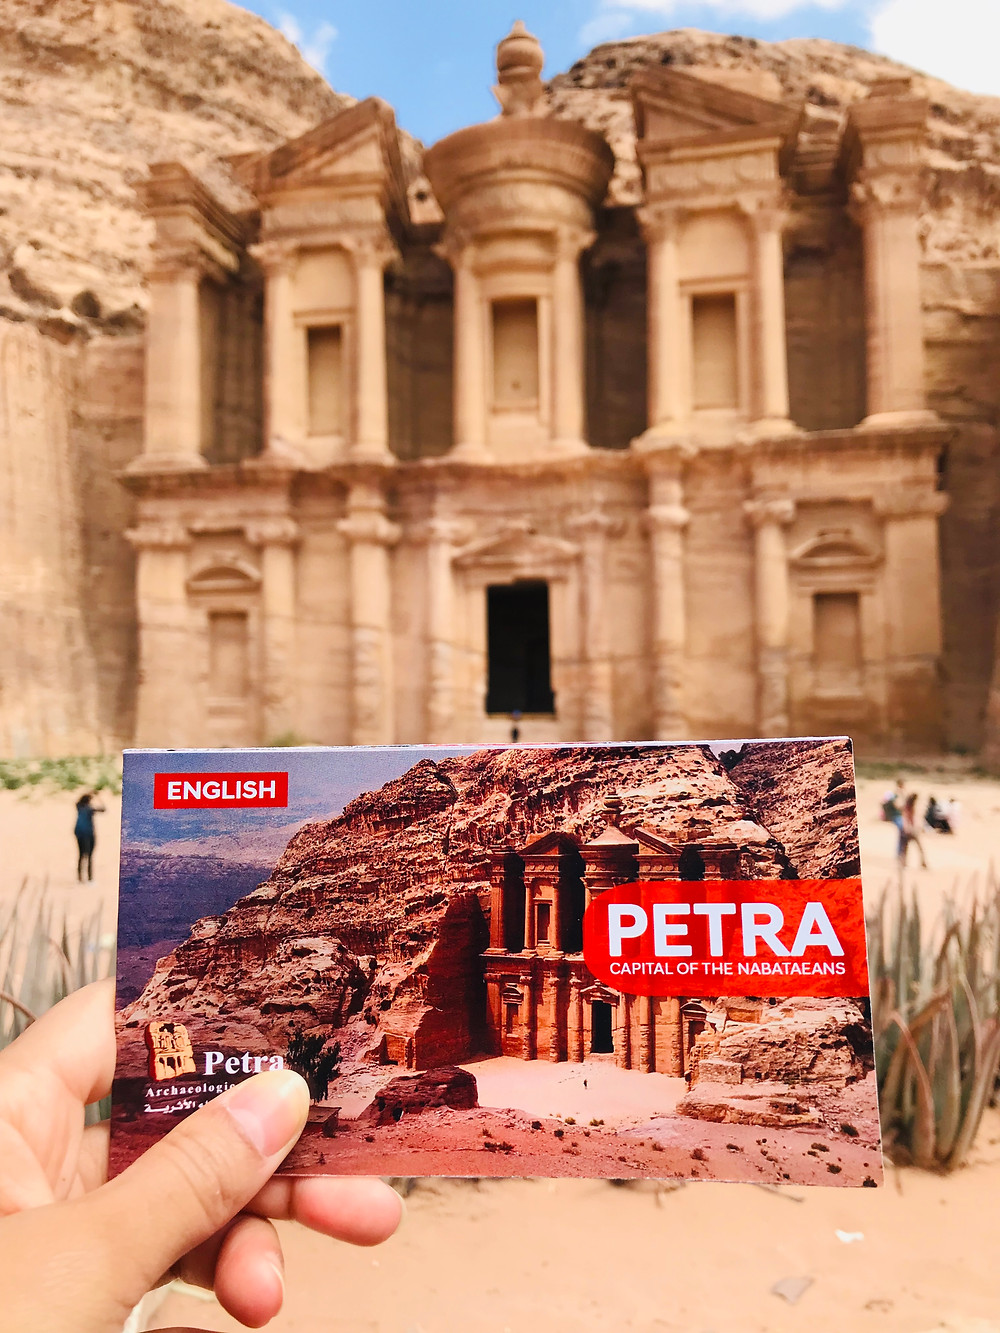 hand holding a Petra informational pamphlet in front of a building carved into the stone walls of the canyon